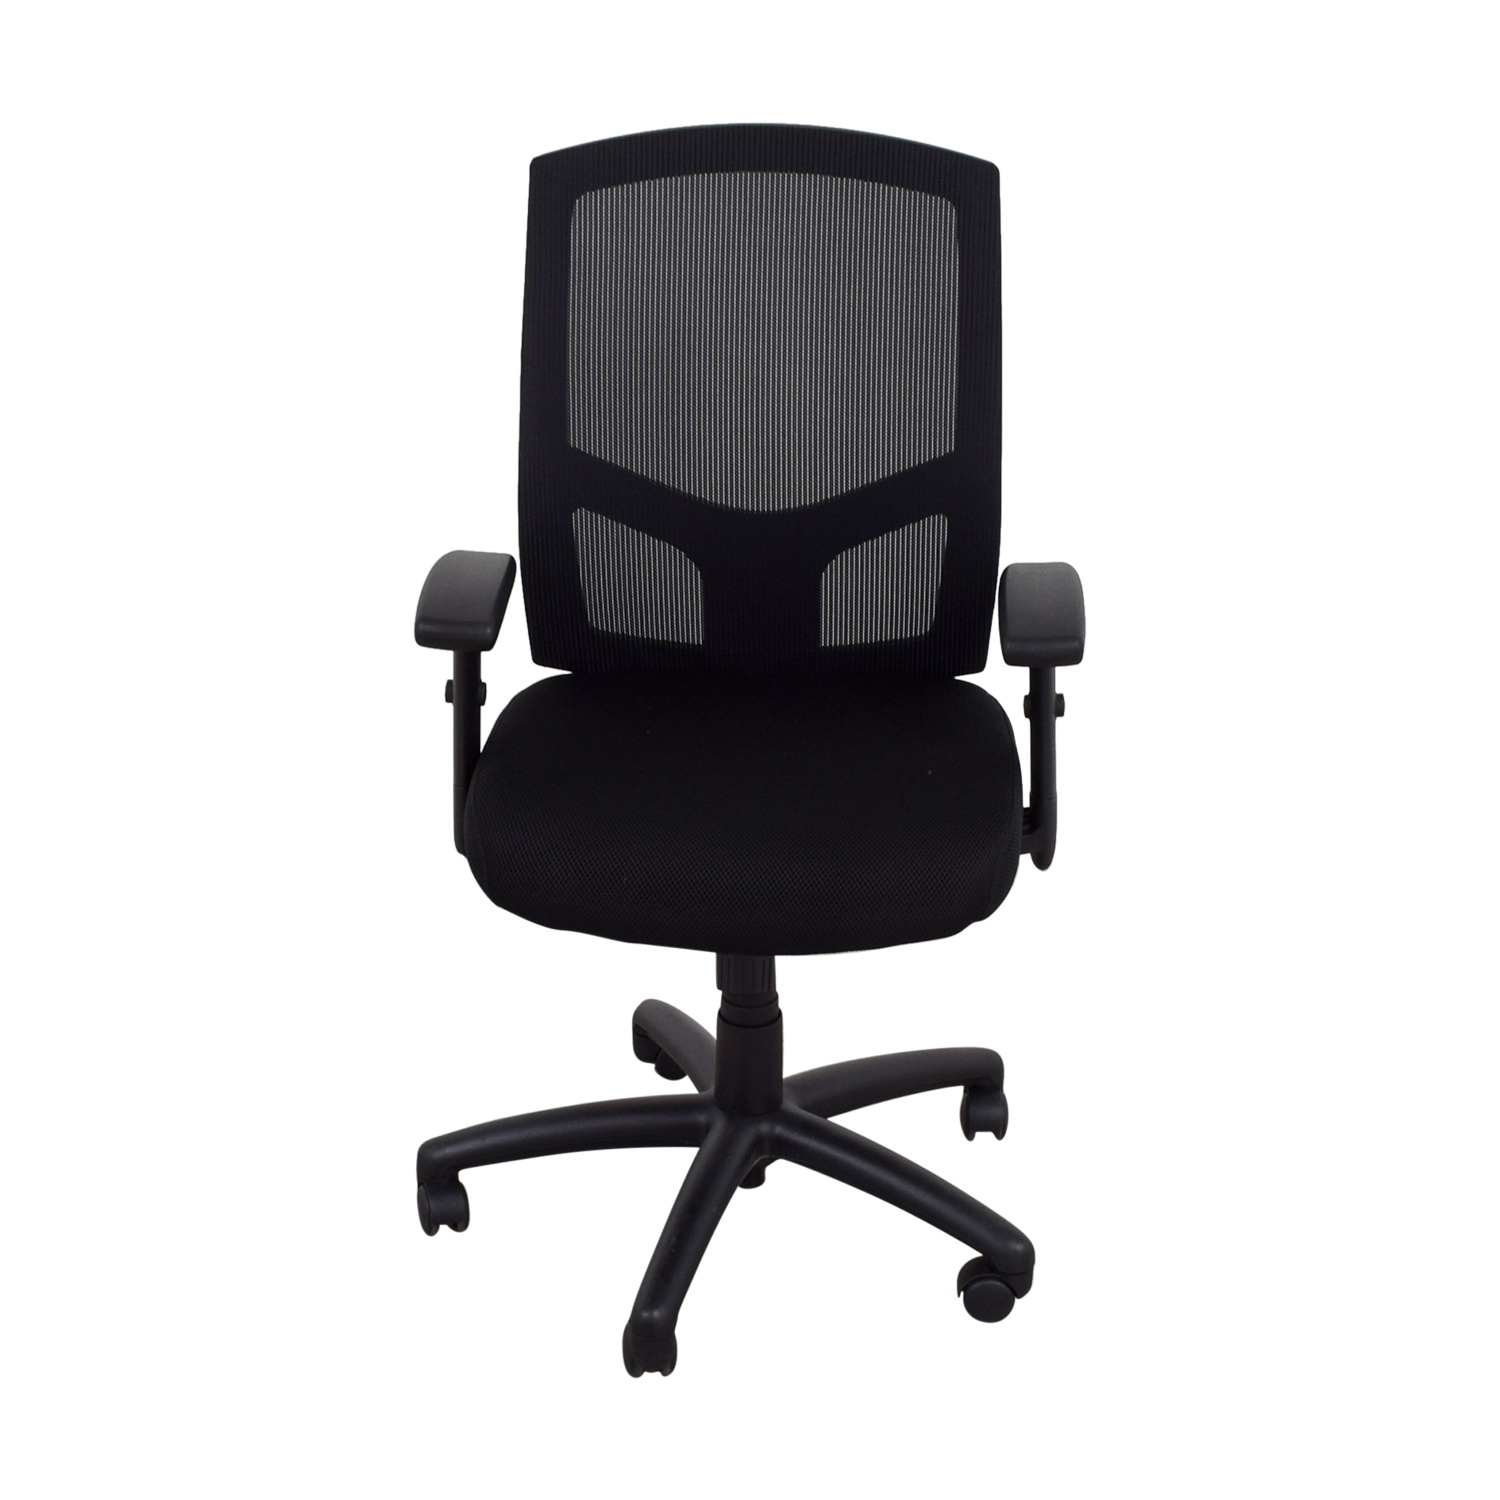 87 off offices to go offices to go black office chair chairs. Black Bedroom Furniture Sets. Home Design Ideas